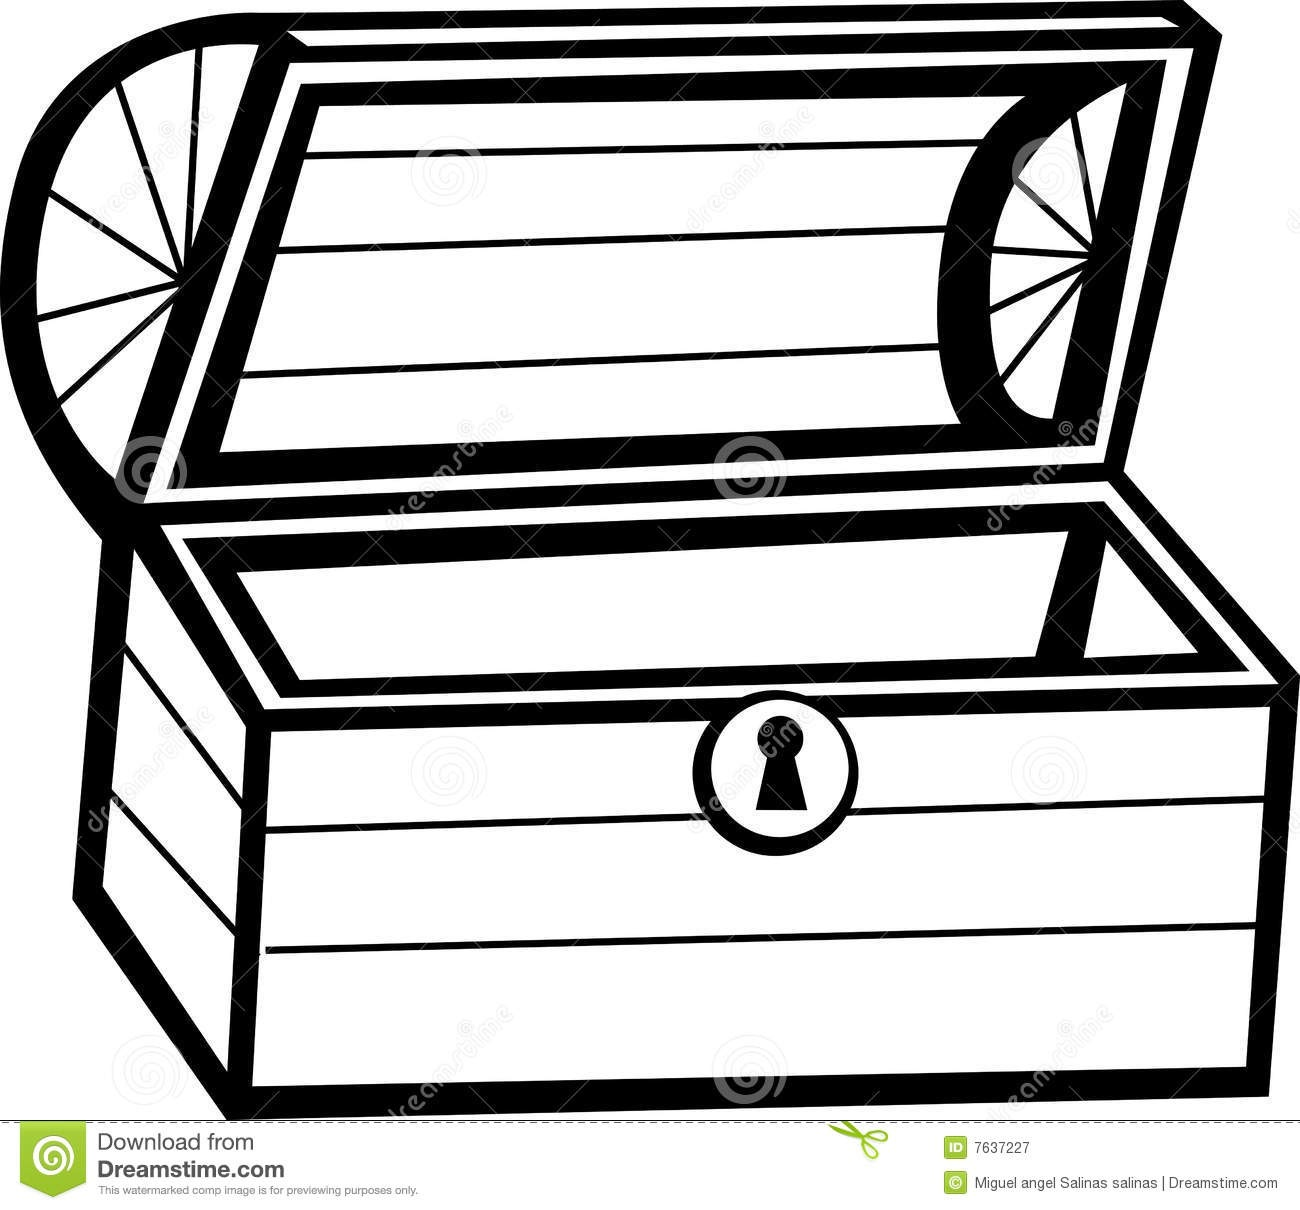 treasure chest silhouette at getdrawings com free for personal use rh getdrawings com free treasure chest clipart free treasure chest clipart